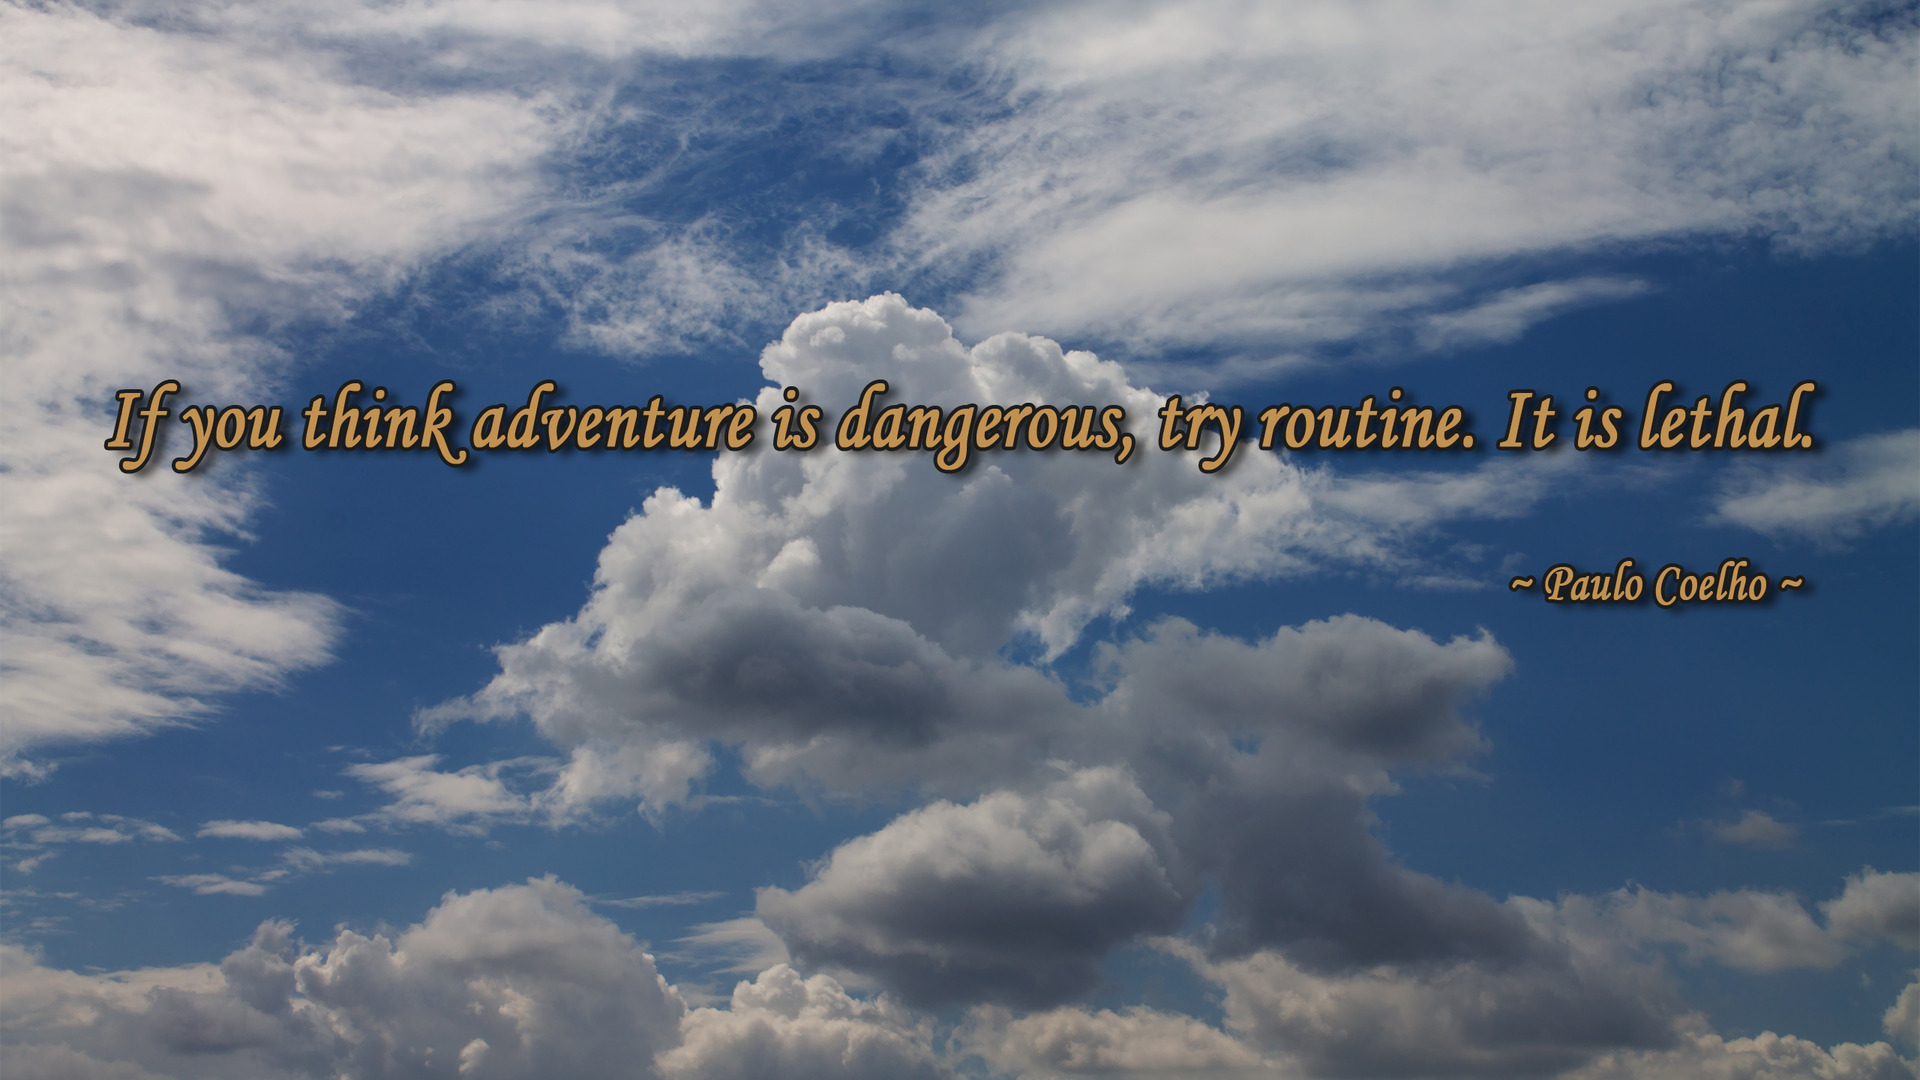 Quotes About Adventure... Adventure Quotes Wallpaper